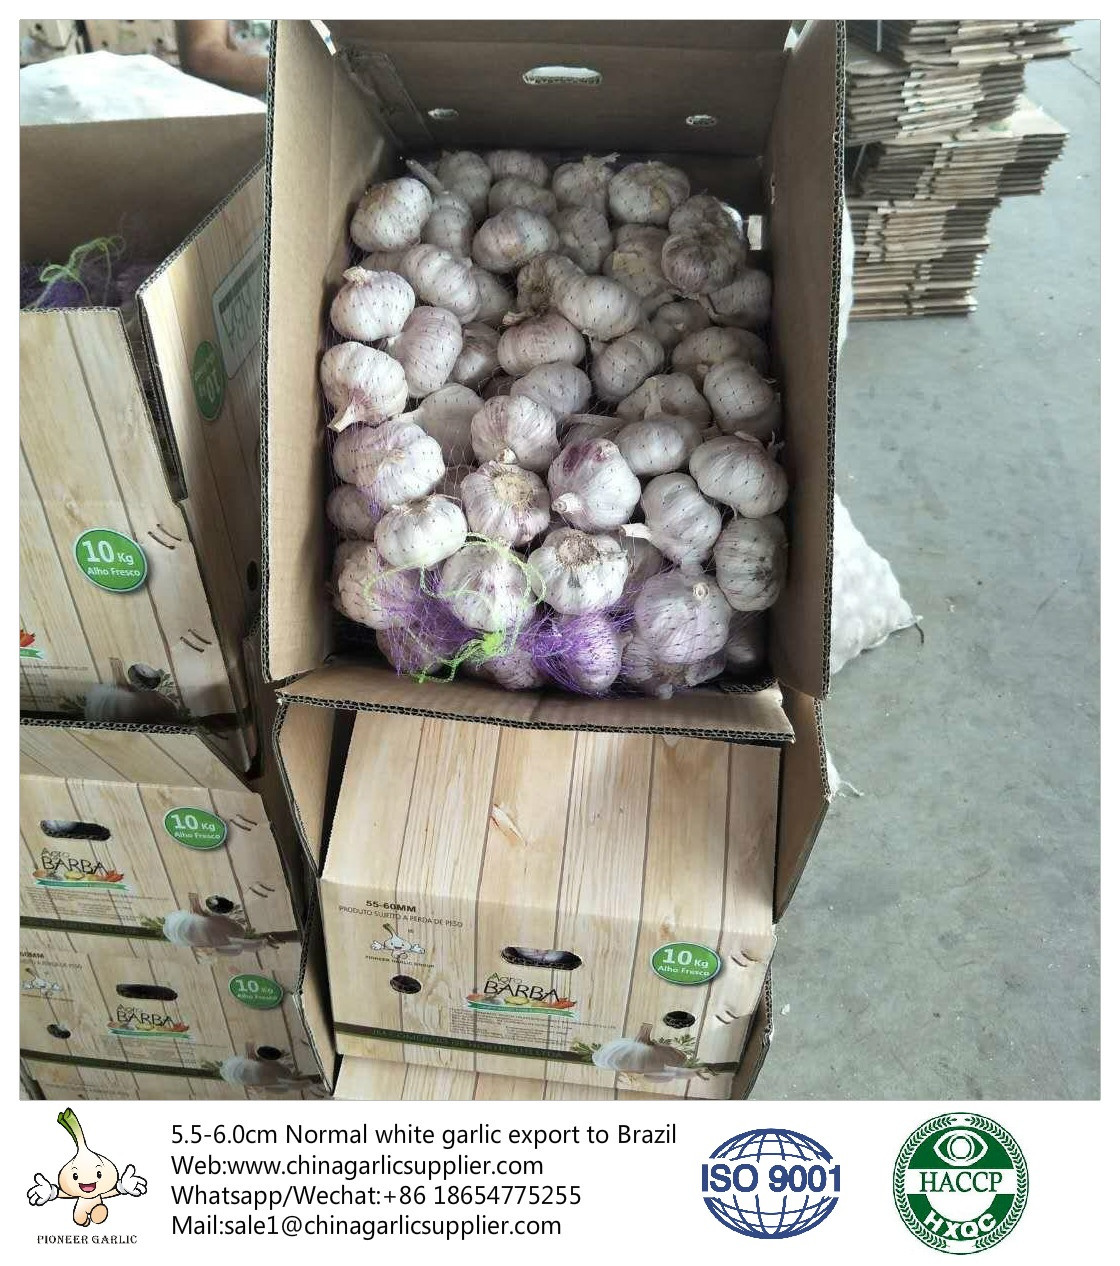 South African garlic prices rise suddenly and sharply